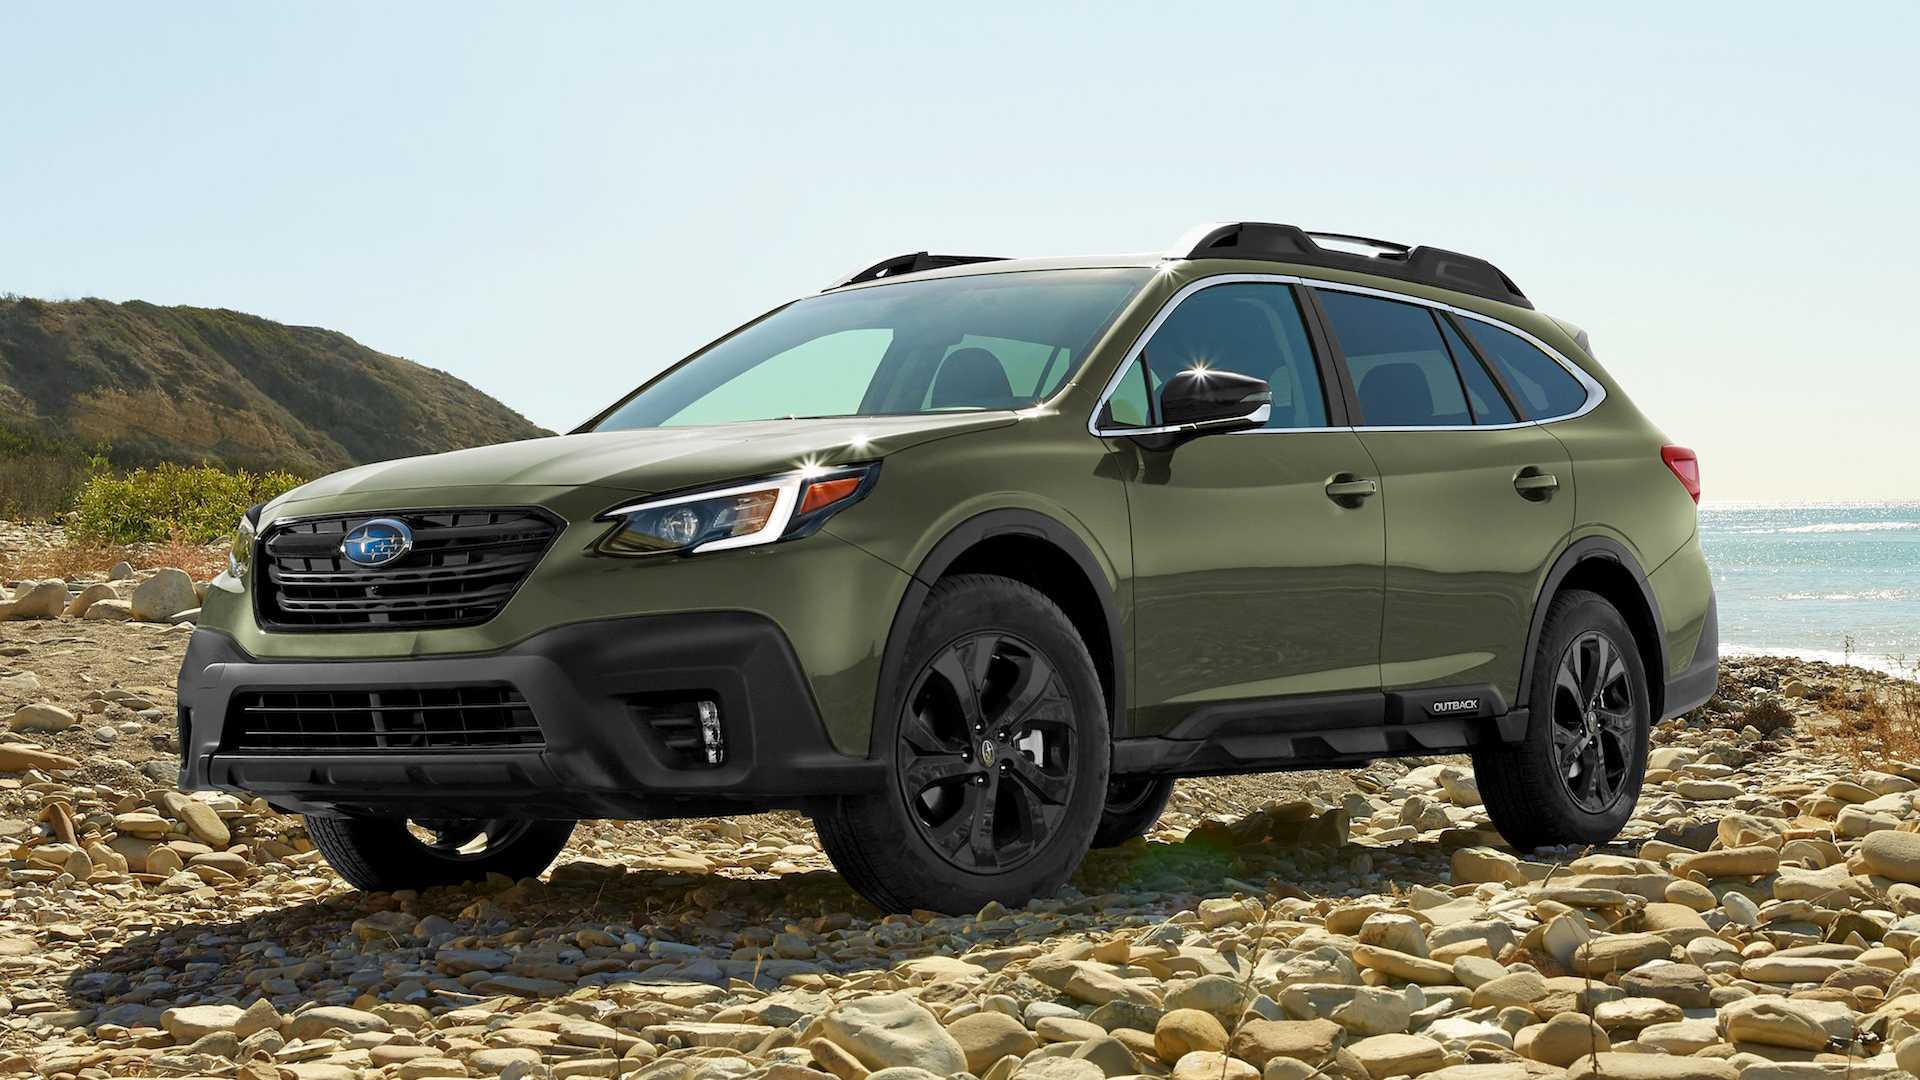 63 All New New Generation 2020 Subaru Forester Price And Review